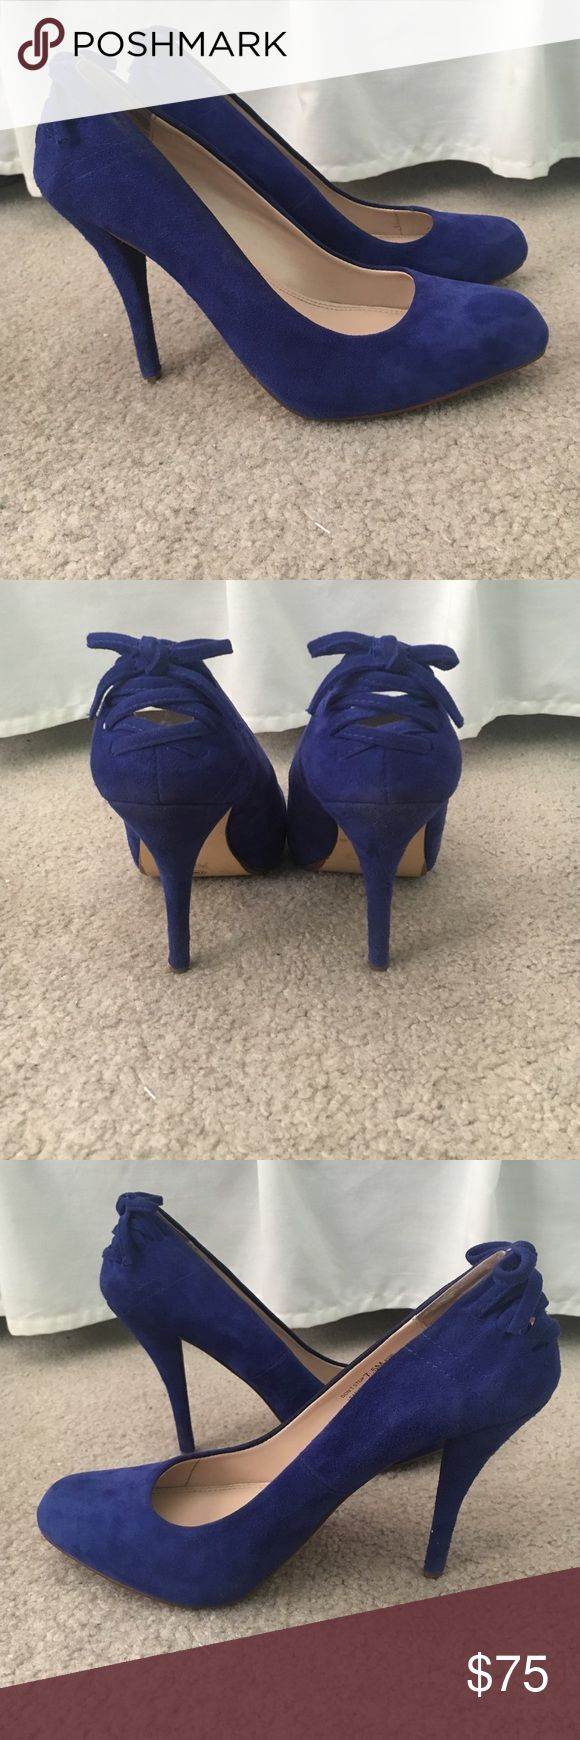 Blue suede pumps Chinese Laundry blue suede pumps, size 7.5, worn multiple times but only signs of use are the scuffs on the bottom sole of the shoe. Chinese Laundry Shoes Heels